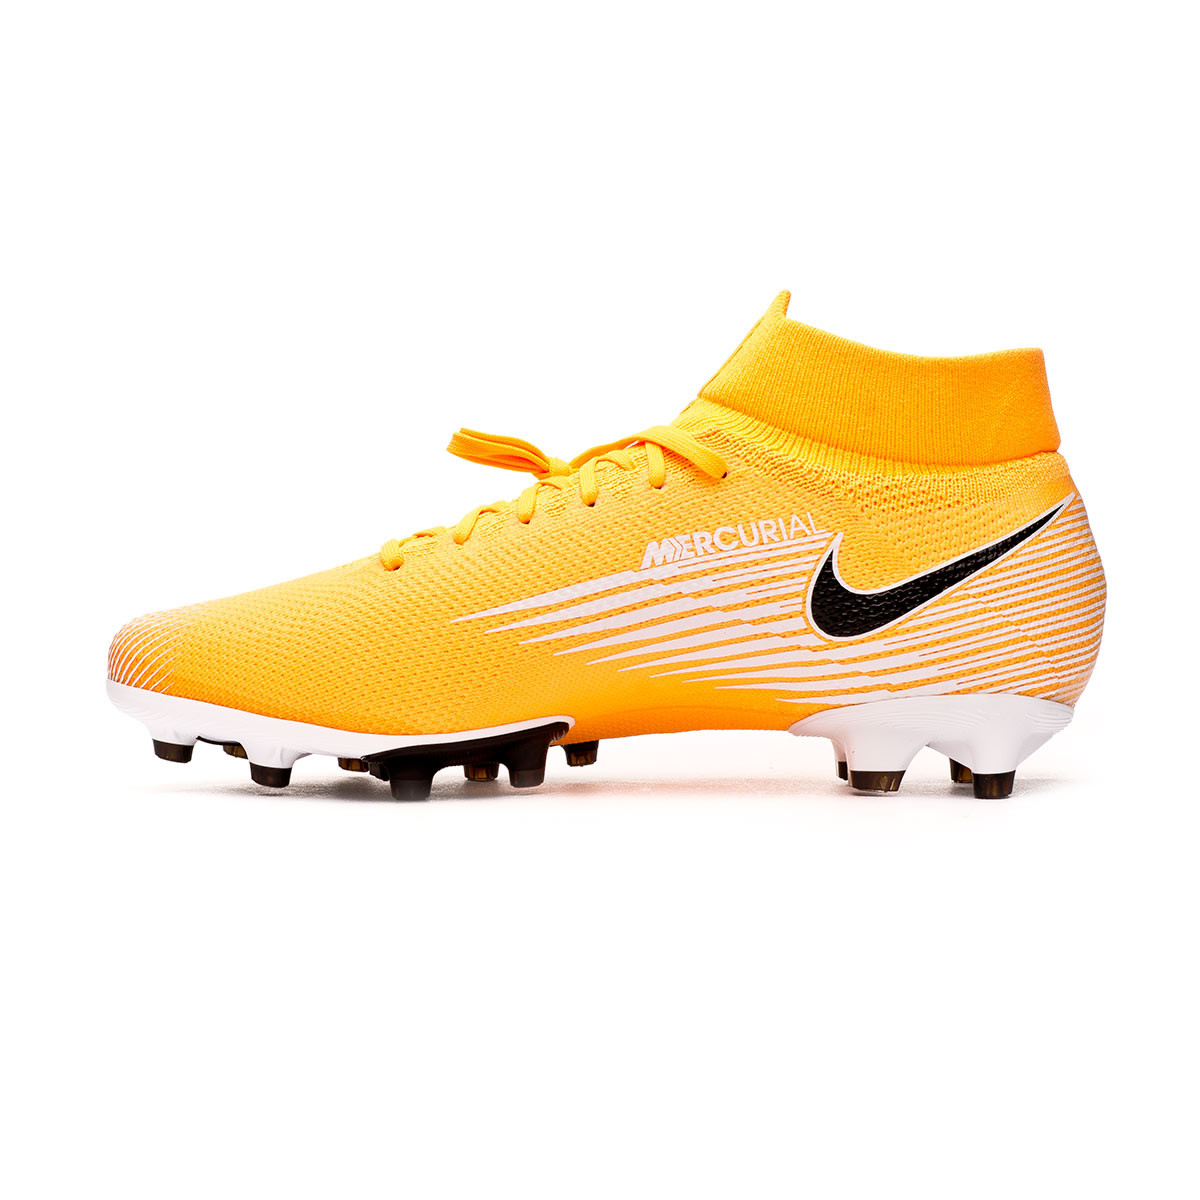 desarrollando partido Republicano hoy  Football Boots Nike Mercurial Superfly VII Pro AG-PRO Laser  orange-Black-White-Laser orange - Football store Fútbol Emotion